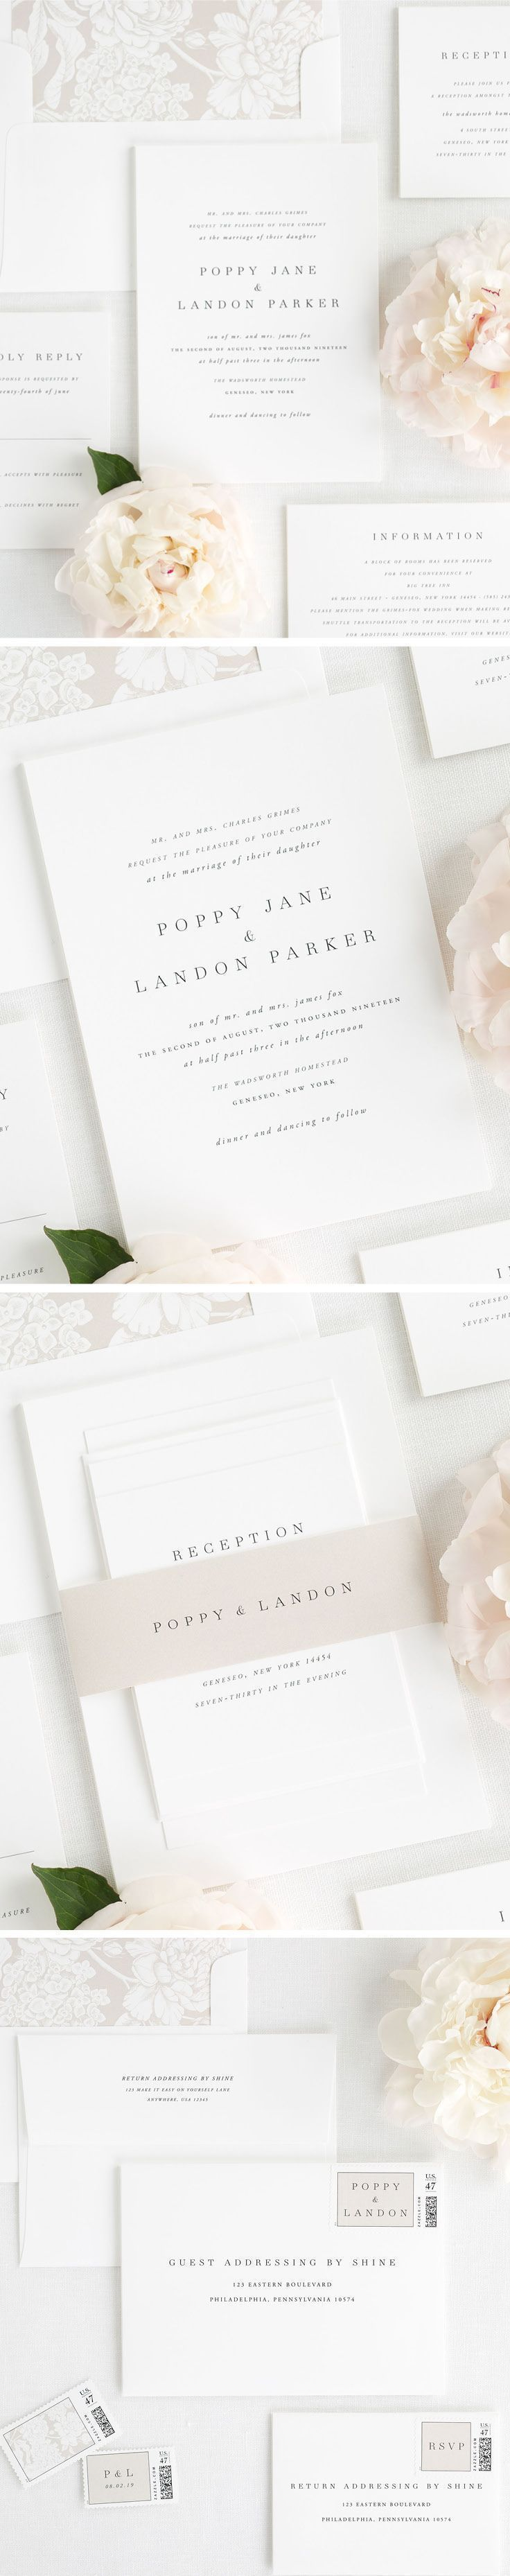 8 Best Invitation Card Images On Pinterest Wedding Stationary